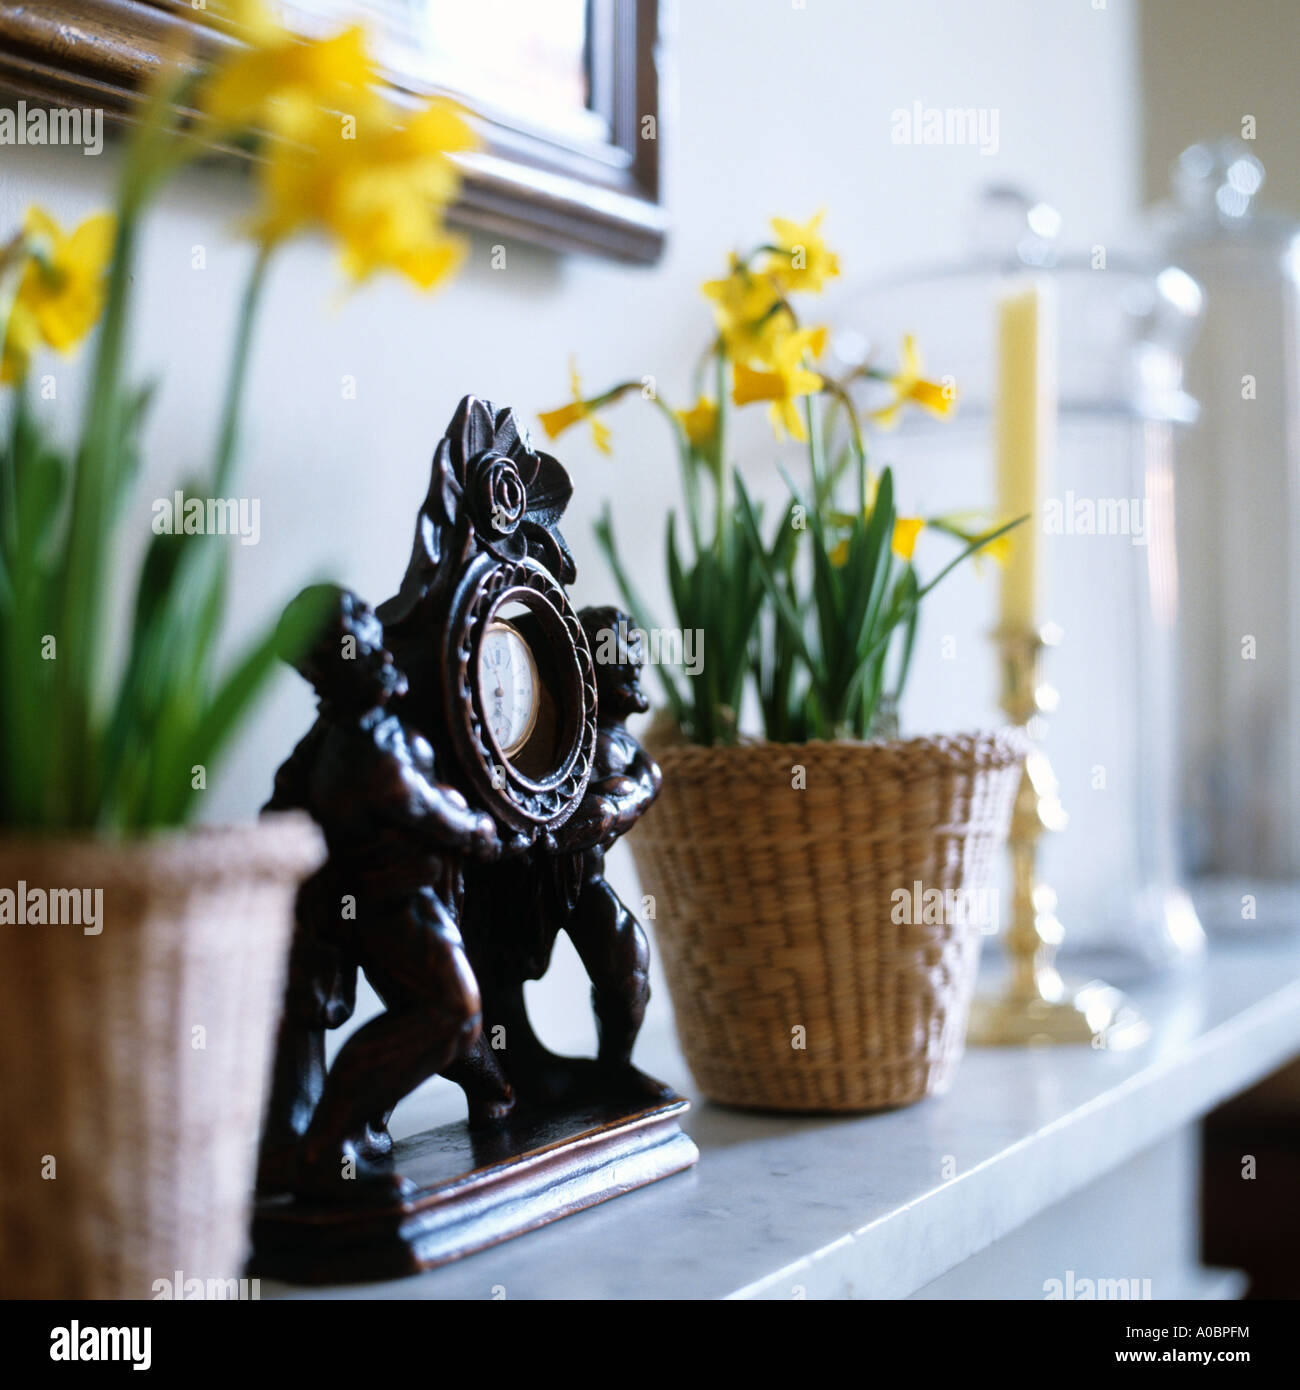 Daffodils in baskets on mantelpiece with clock - Stock Image